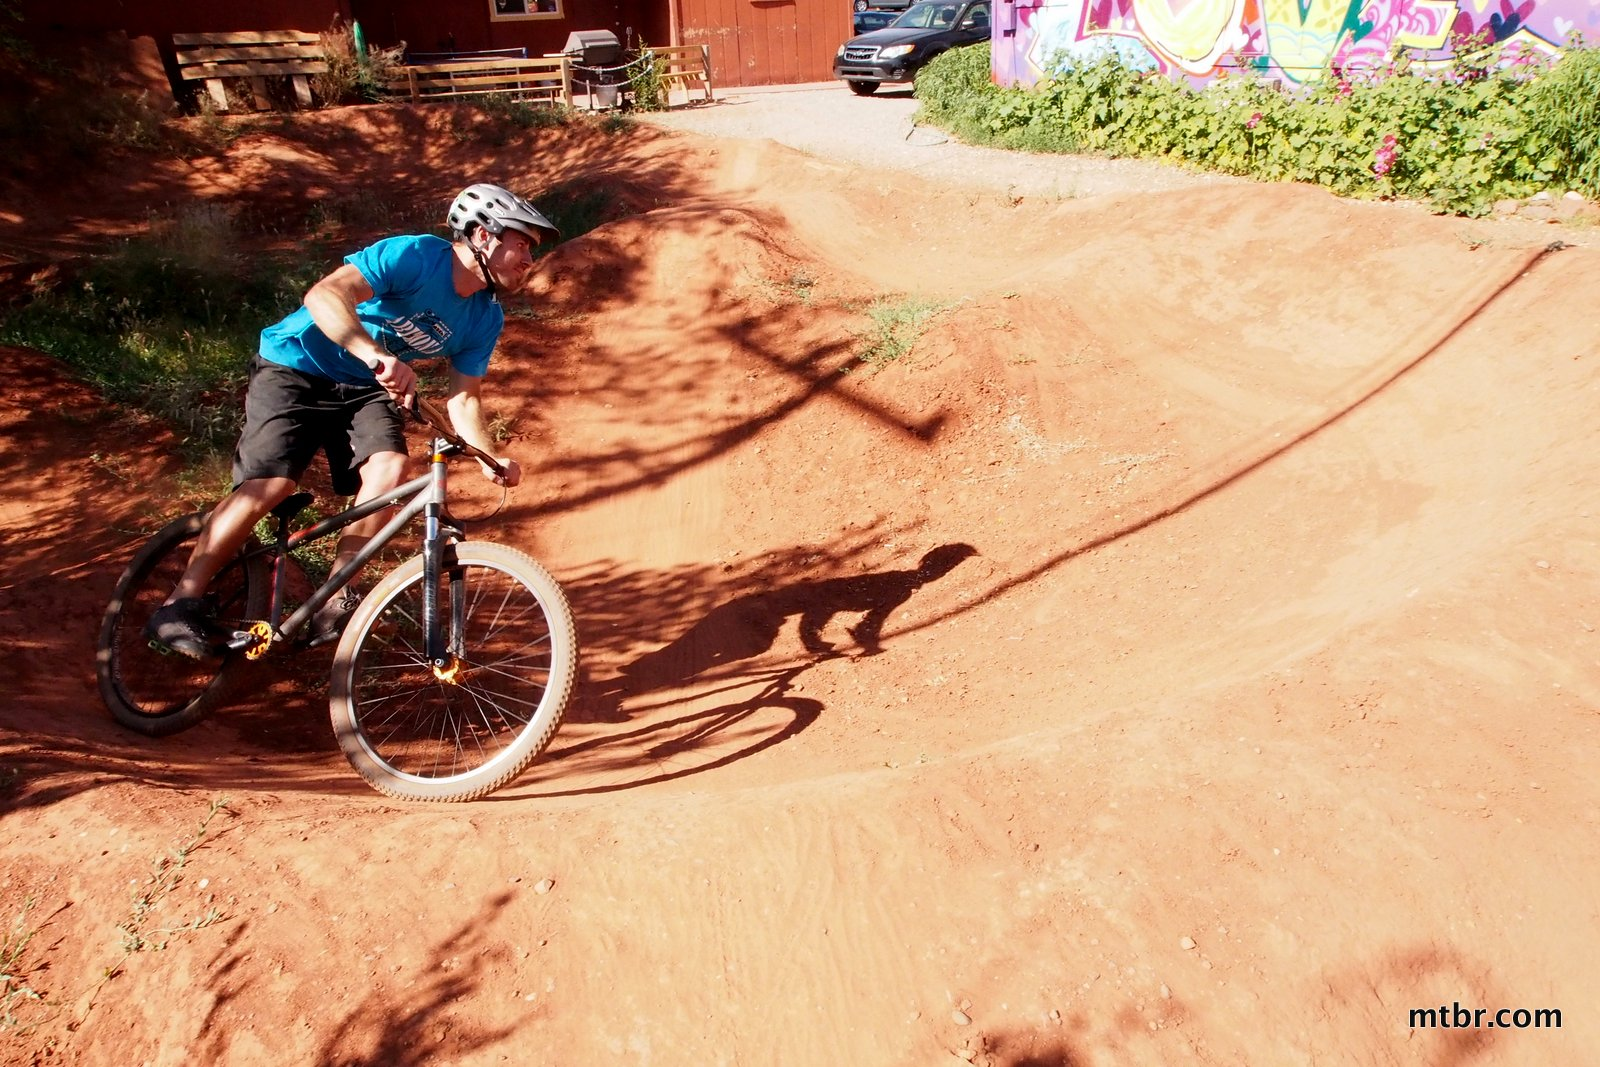 Over The Edge Jason on Pump Track